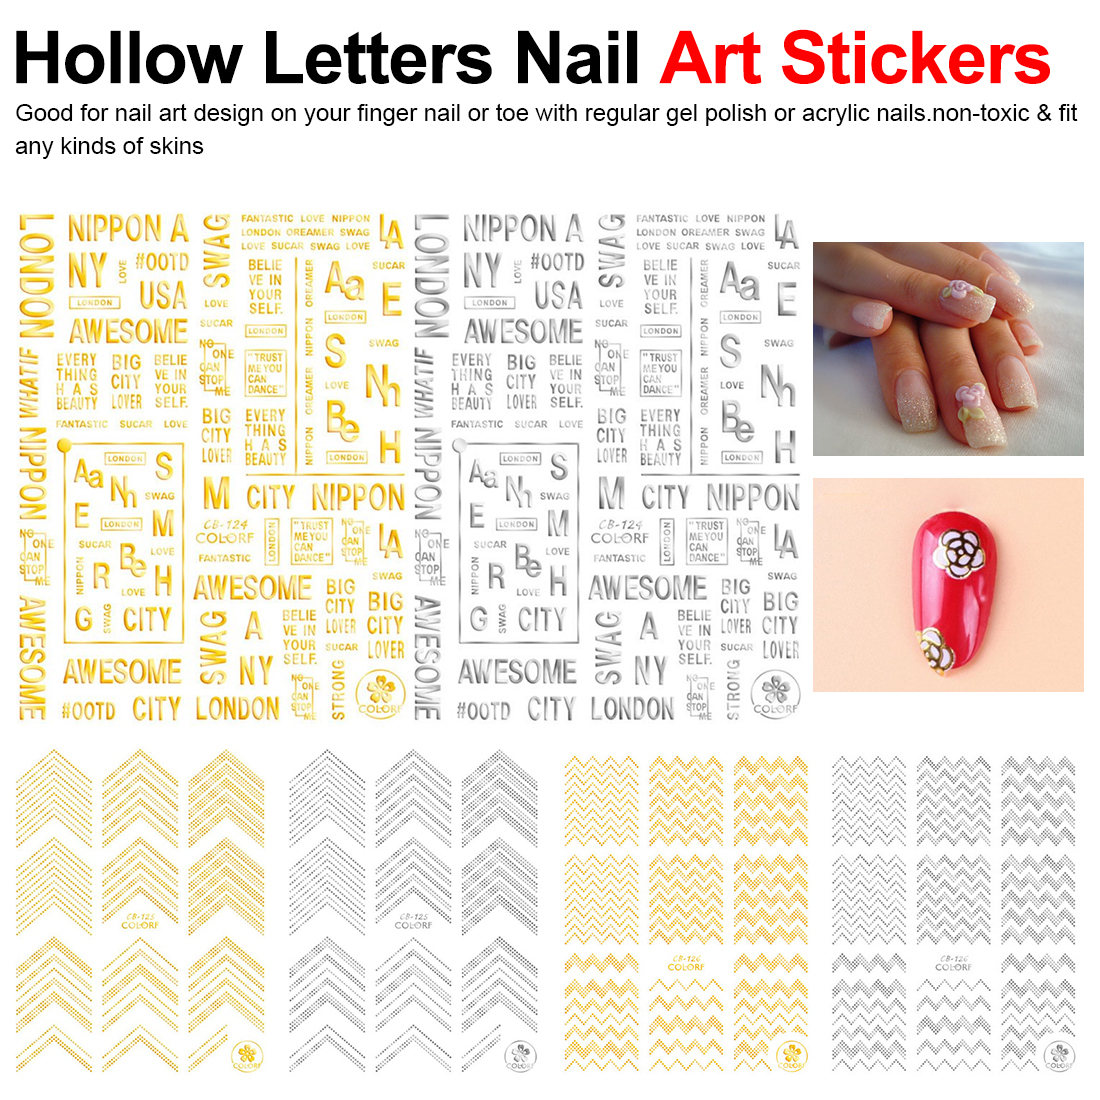 1pc Hollow Letters Nail Art Stickers 3D Black White Silver Gold Adhesive Decal Nail Wrap Decor Tips New Style(China)